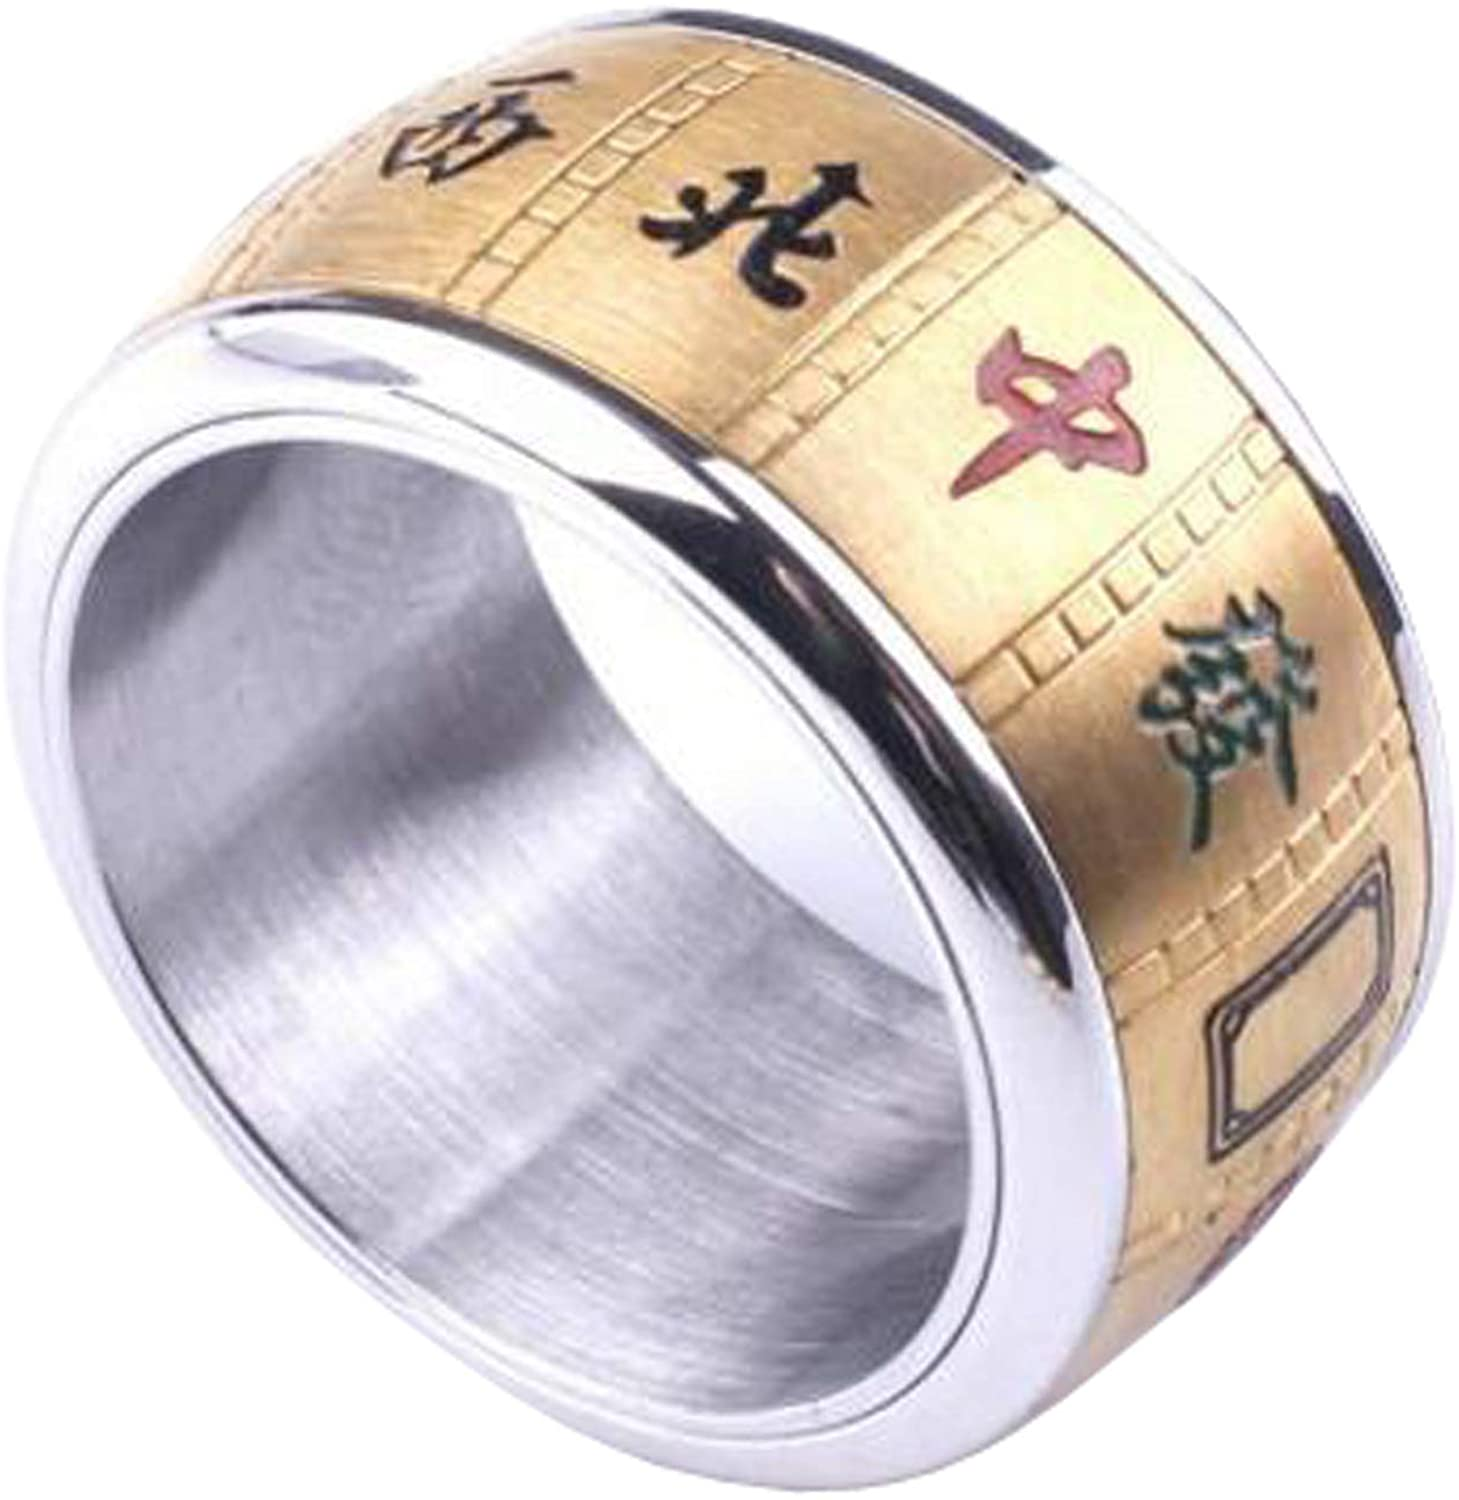 8mm Titanium Steel Gold Plated Rotatable Mahjong Ring Good Luck Rings for Men and Women Size 6-12